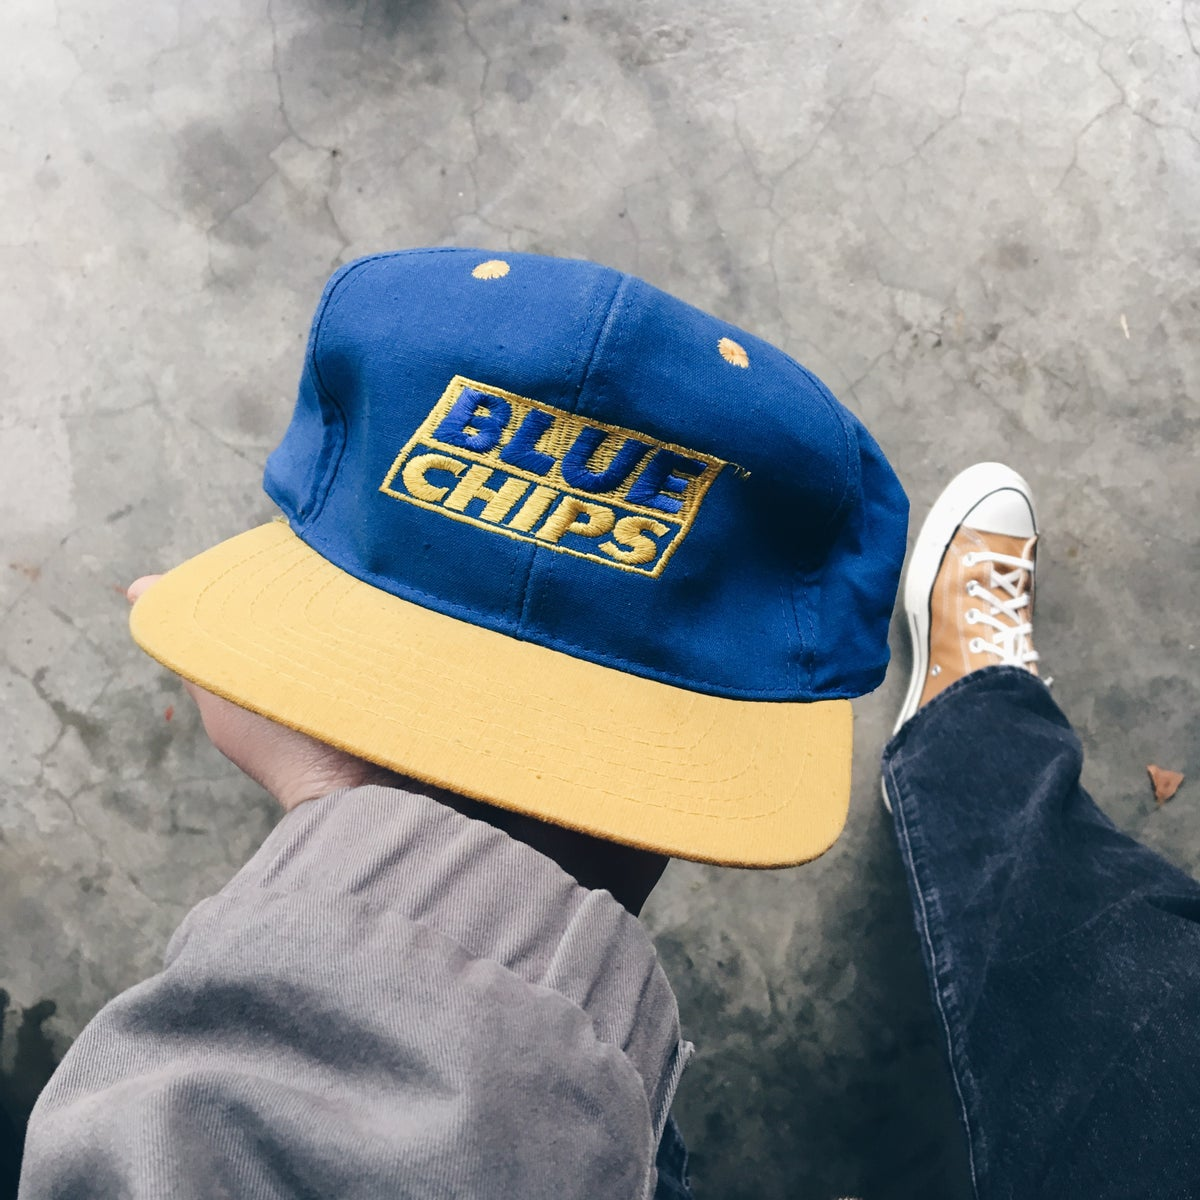 Image of Original 1994 Blue Chips Promo Hat.